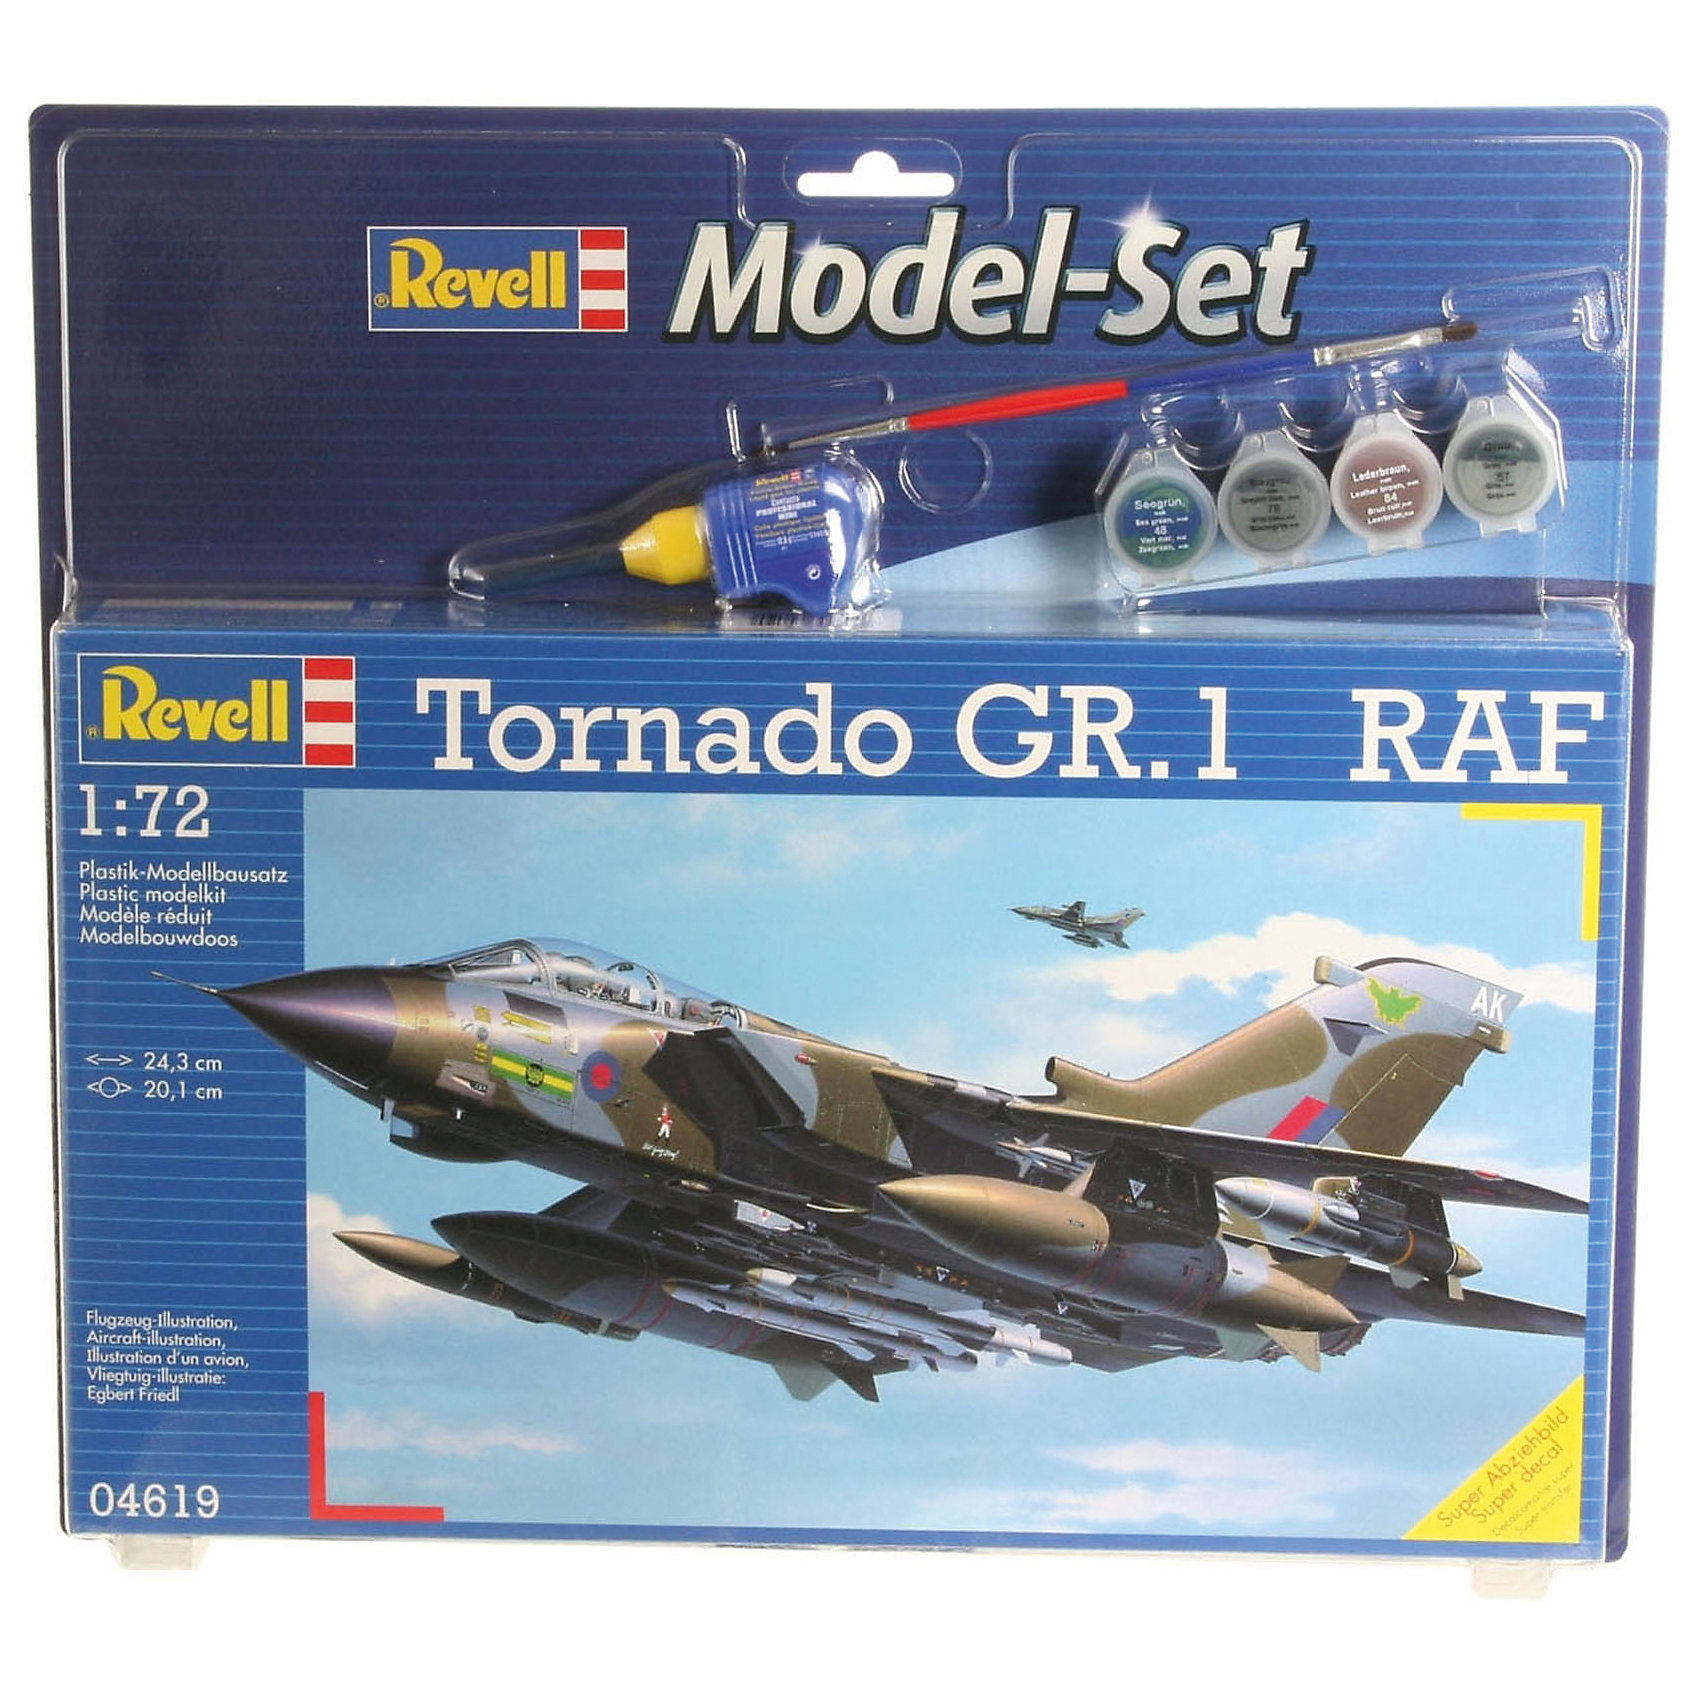 Revell Самолет Model Set Tornado GR, Revell revell bae harrier gr mk 7